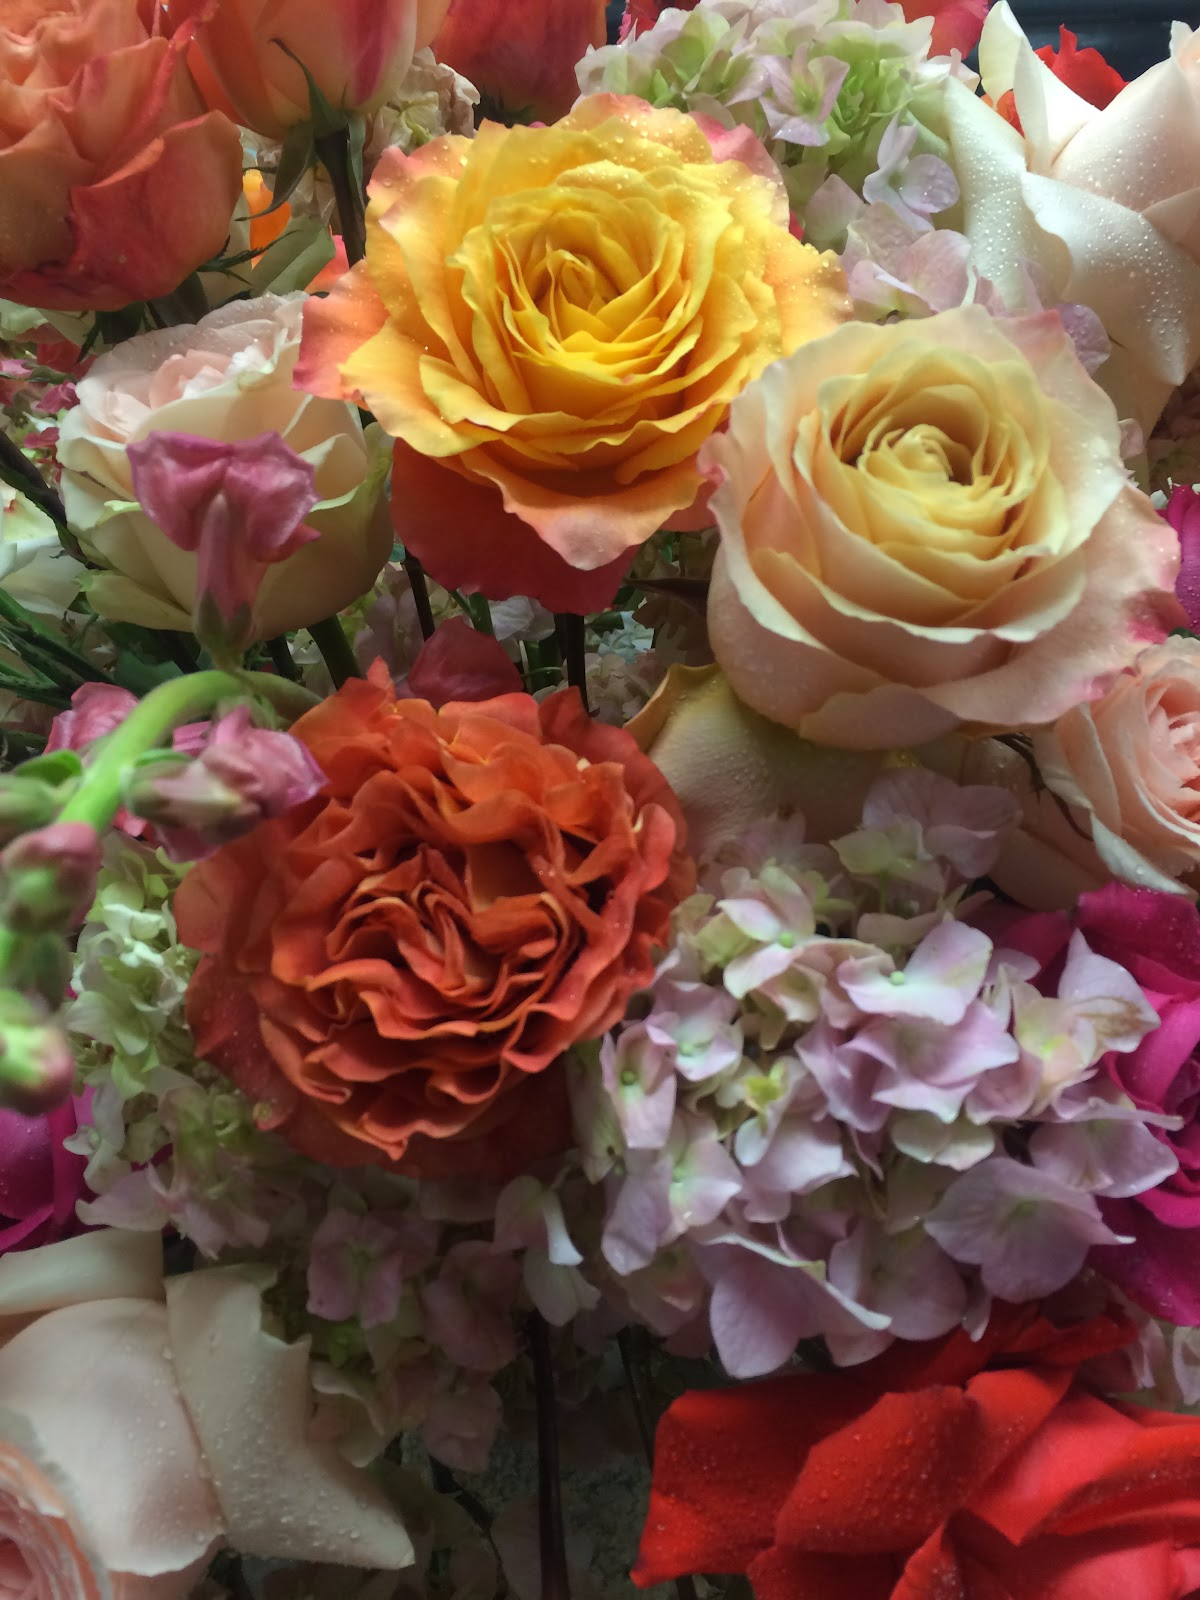 Blog diana gould ltd her flowers included an array of roses in the most beautiful shades as well as gorgeous coral snapdragon lush pink hydrangea and fabulous coral peonies izmirmasajfo